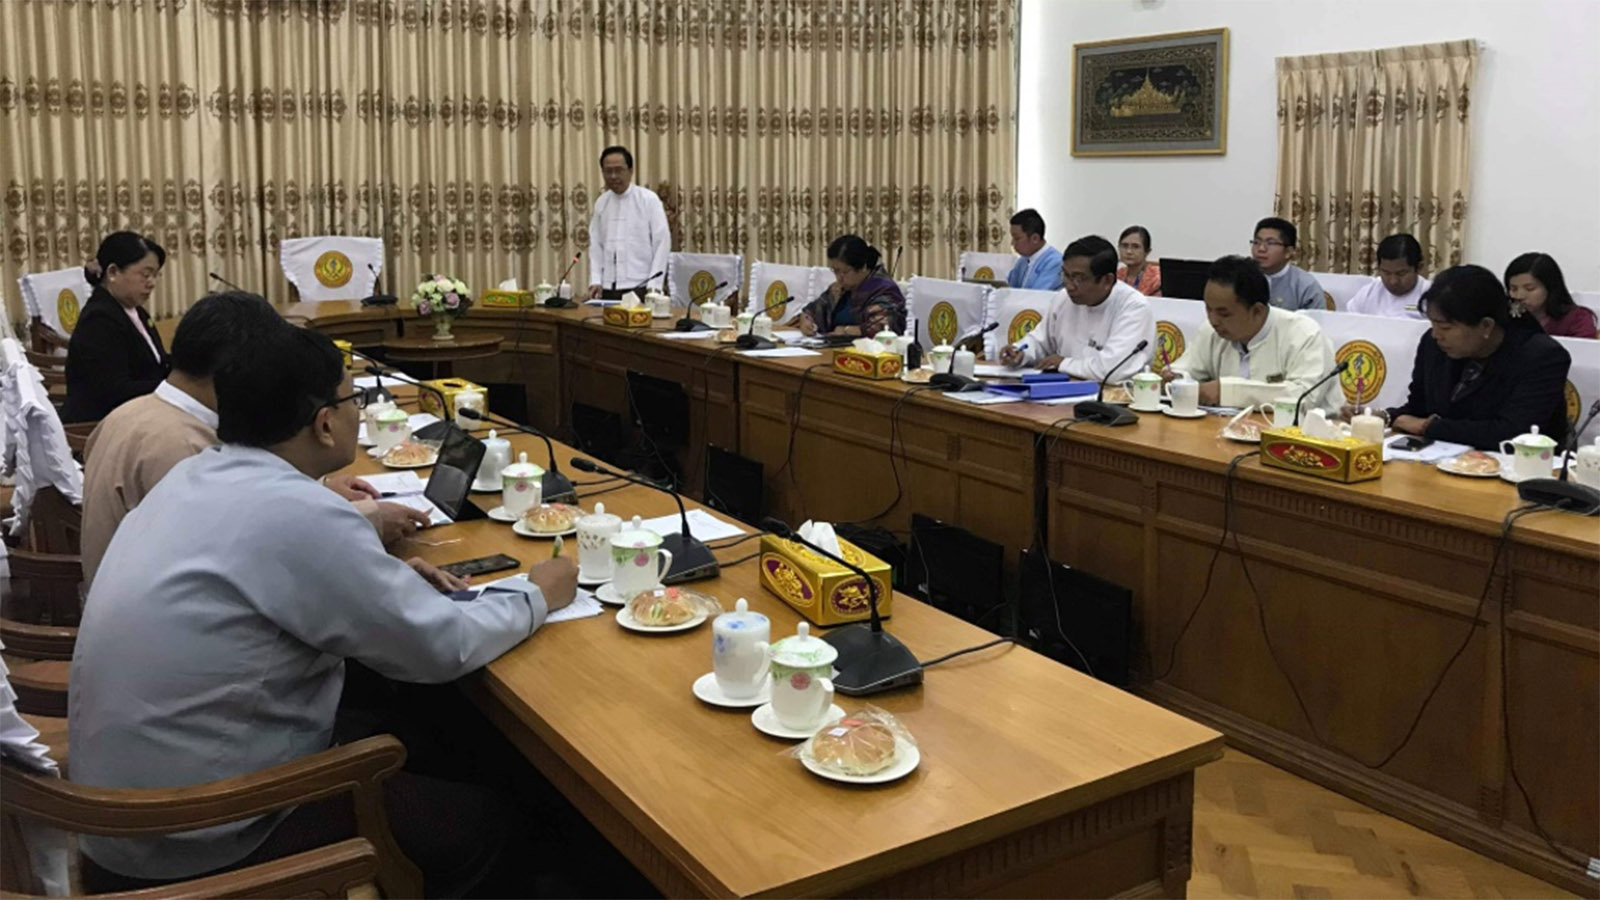 Permanent Secretary Dr Thet Khaing Win delivers the speech at the meeting concerned with the prevention of 2019 Novel Coronavirus (2019-nCoV) at the Ministry of Health and Sports on 8 January 2020. Photo: MNA